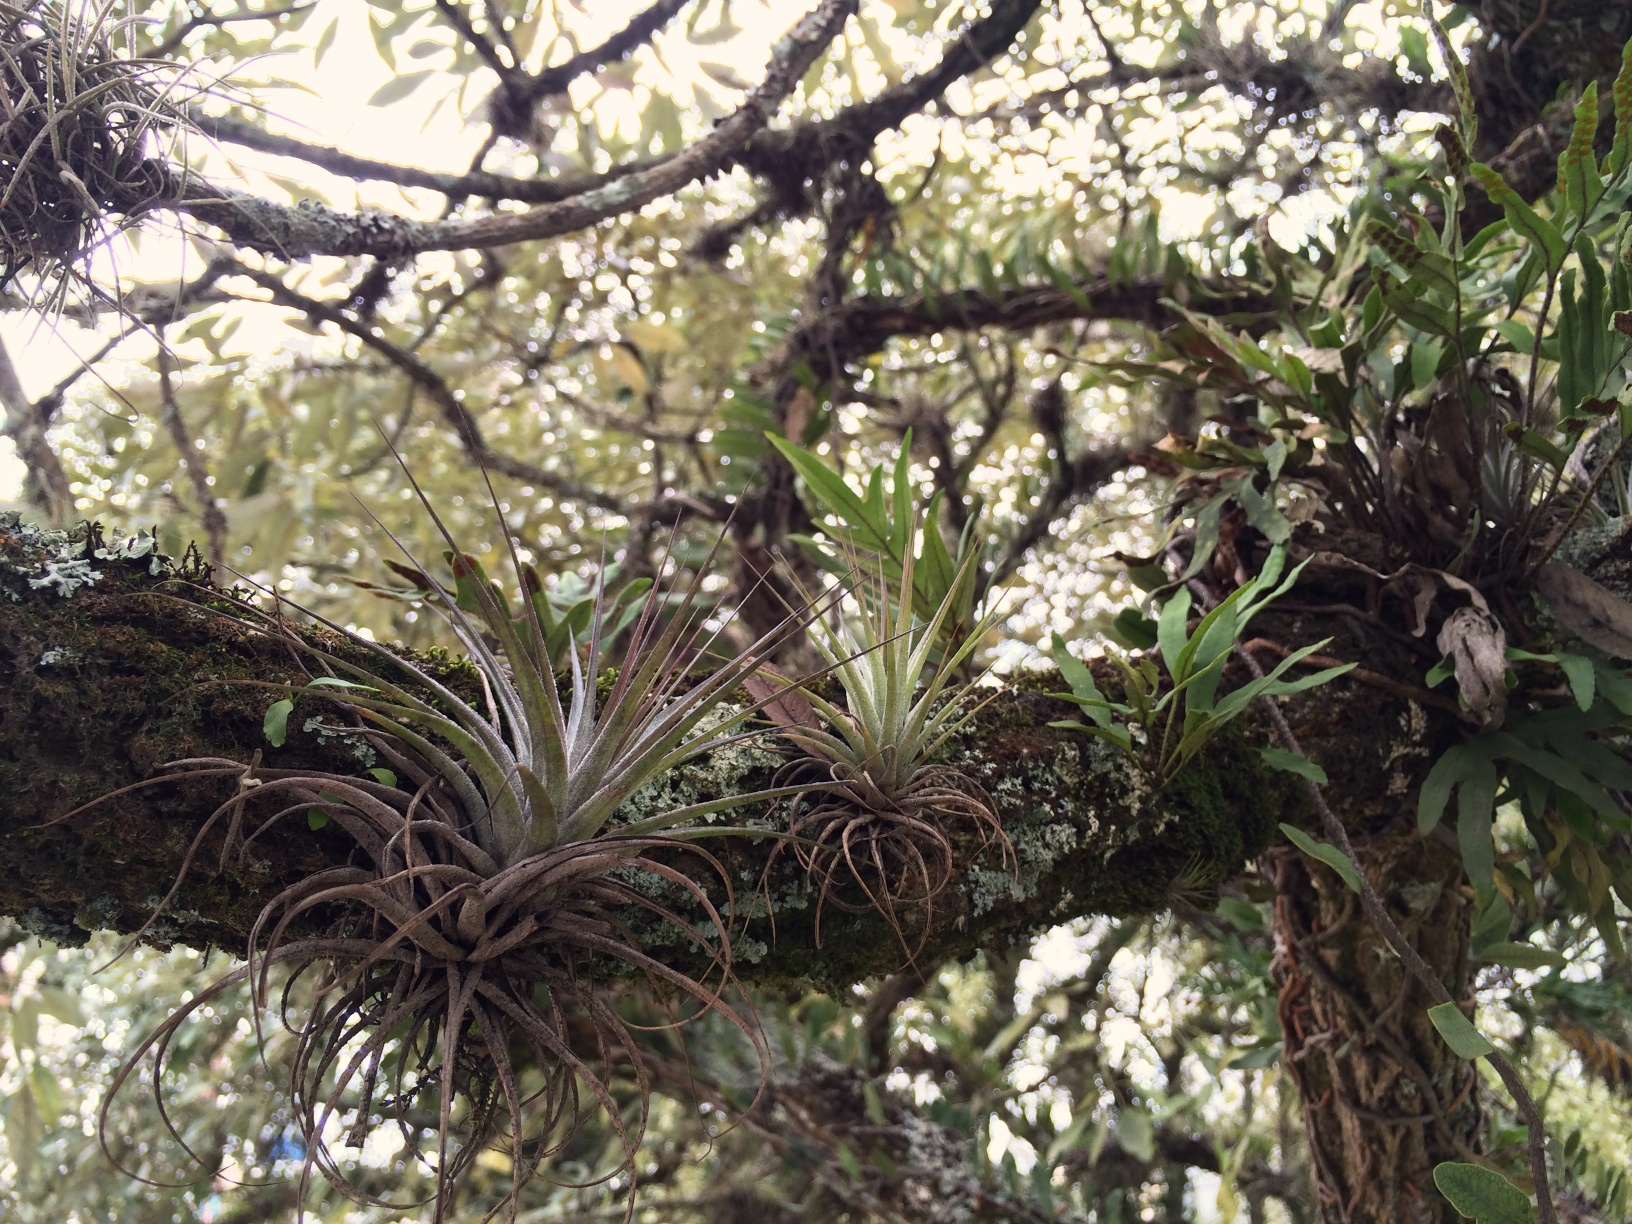 Street Tree, Curitiba, Brazil: tilandsias, ferns and lichens cohabitating peacefully on a tree branch; we have these same types of tilandsias at Acorn.